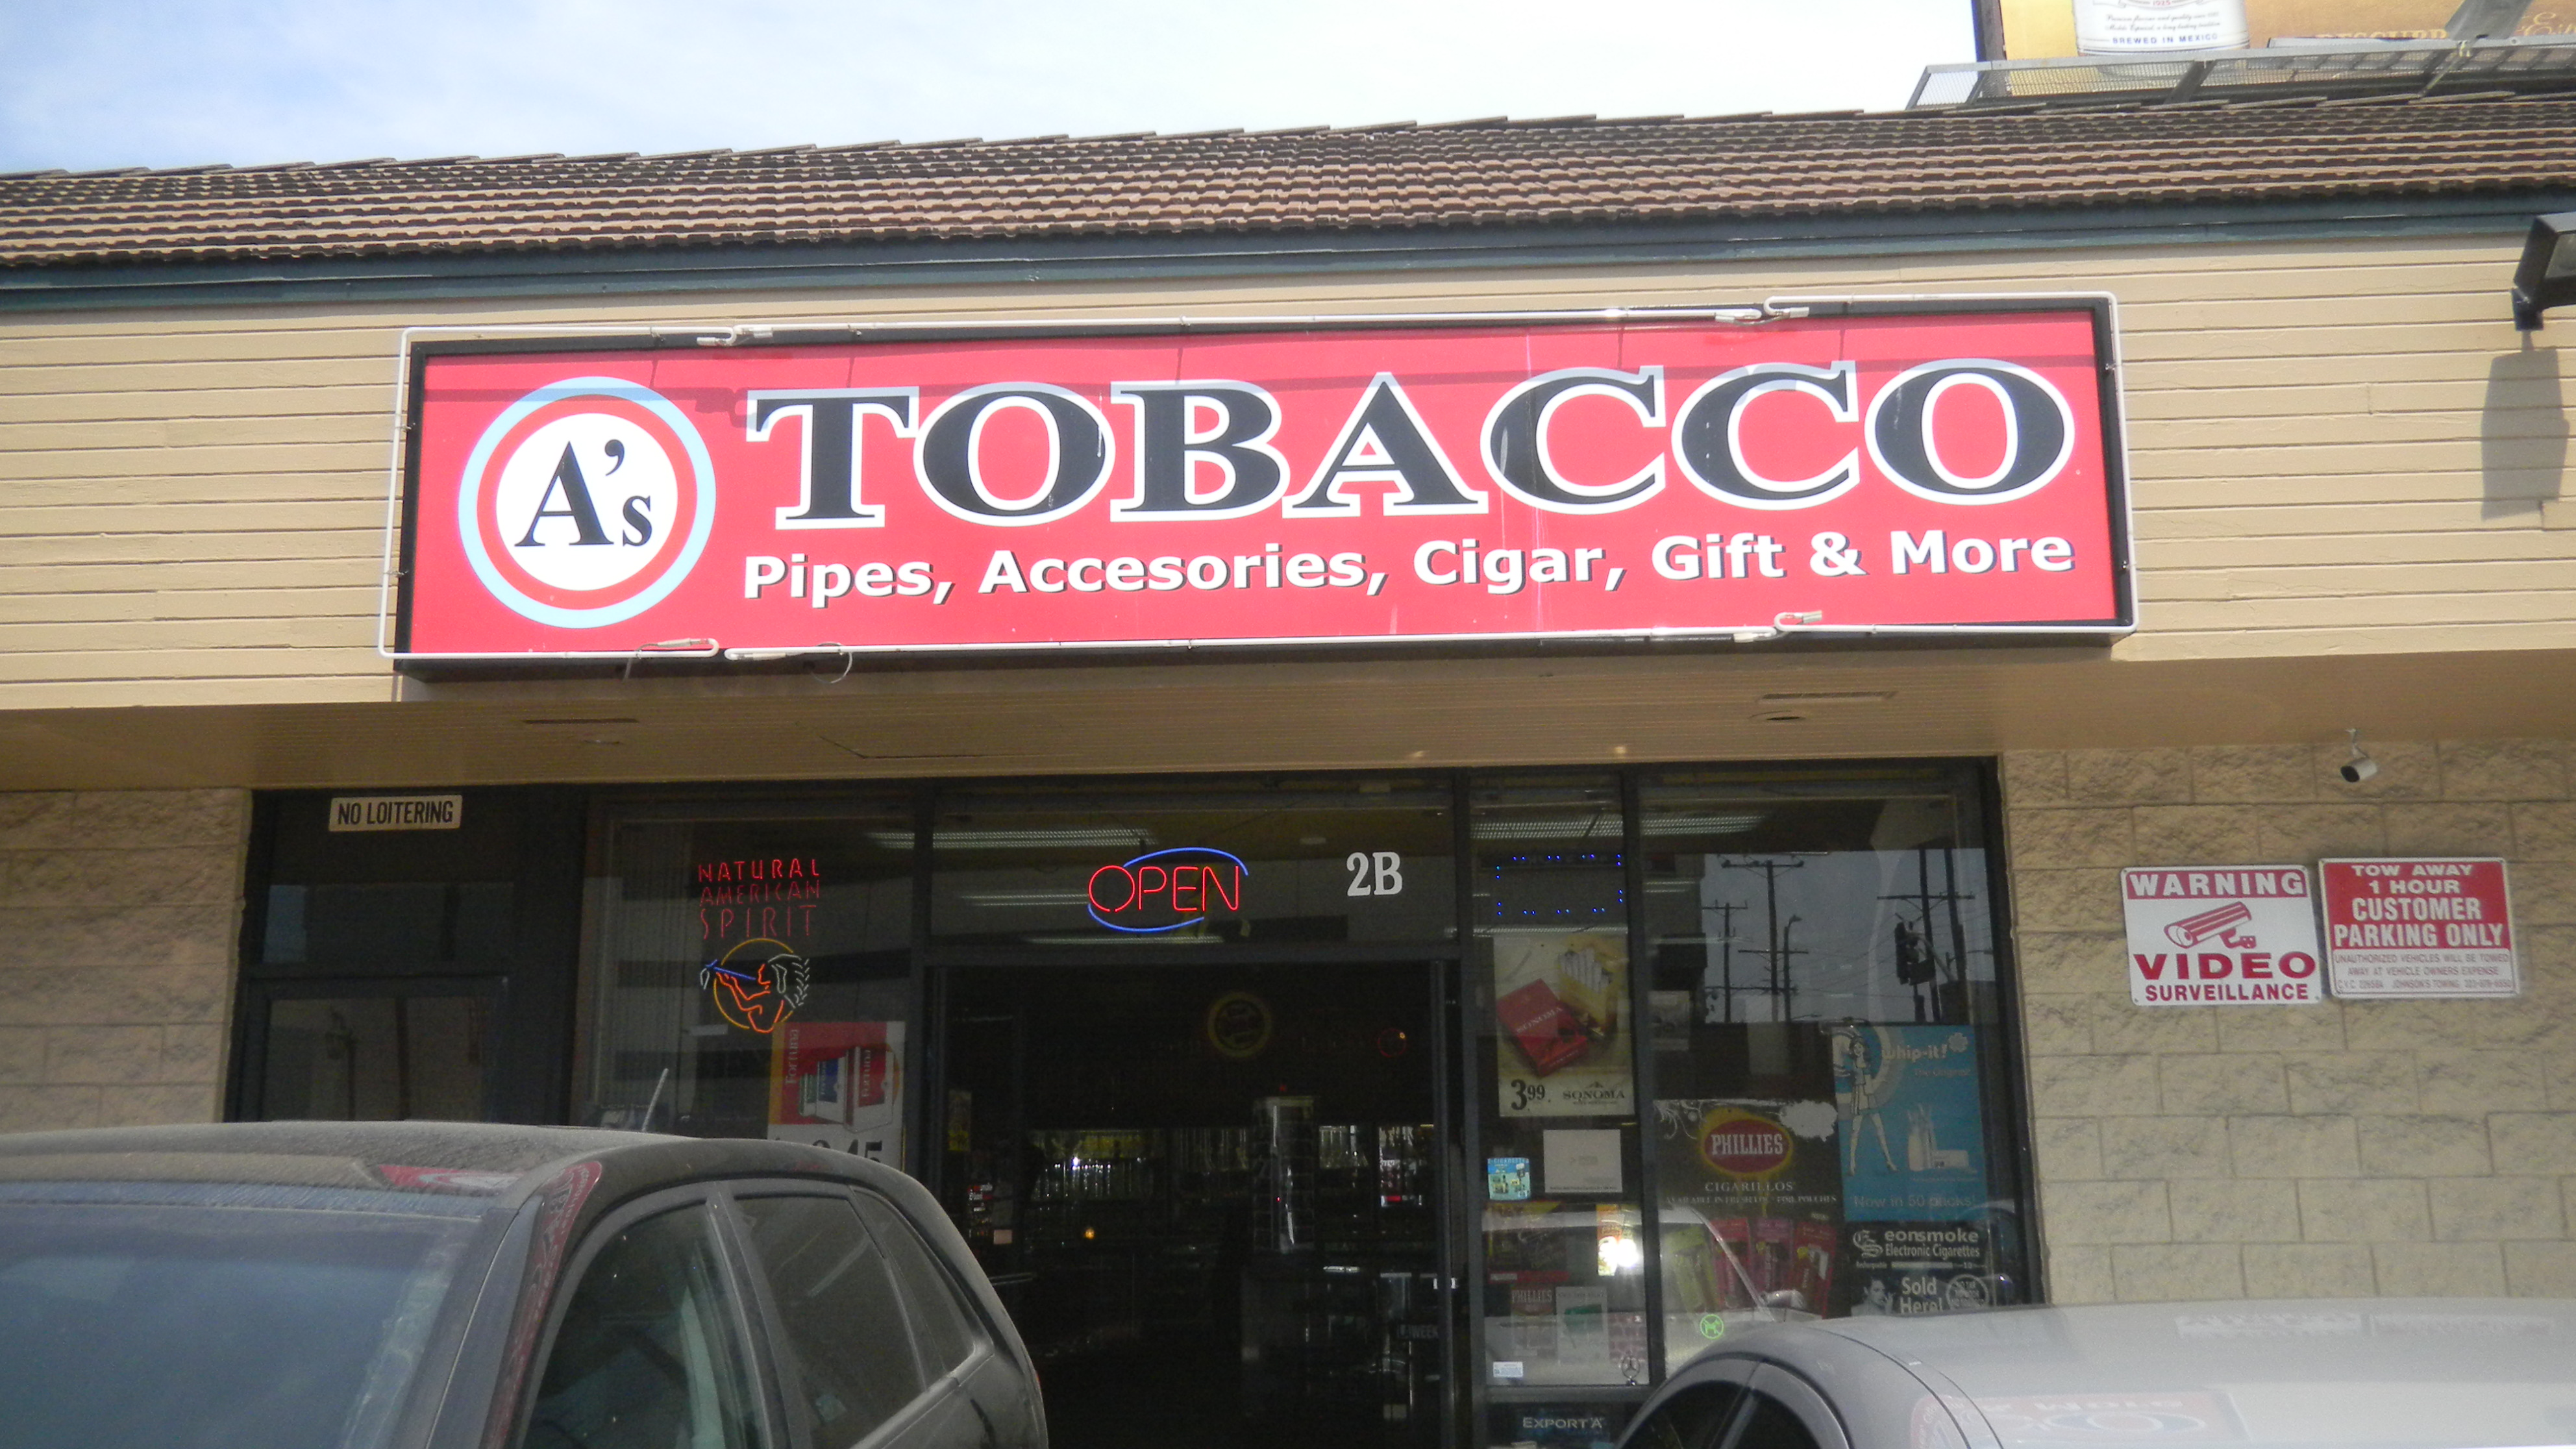 A's Tobacco 6775 Santa Monica Blvd. Los Angeles, CA 90038 (323) 466-1789